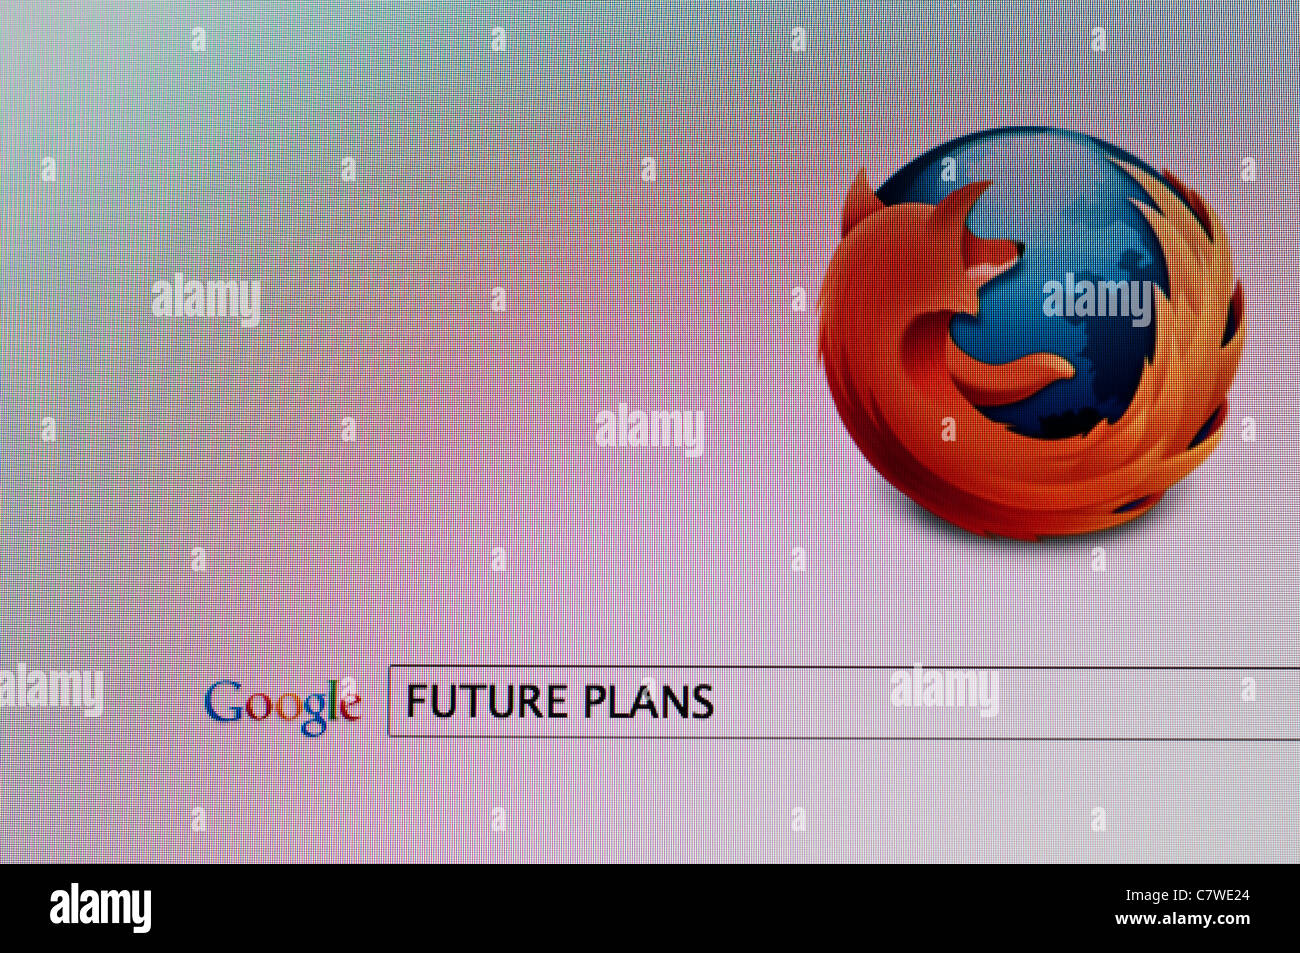 Computer screen with Google search on Firefox browser for 'Future plans' - Stock Image